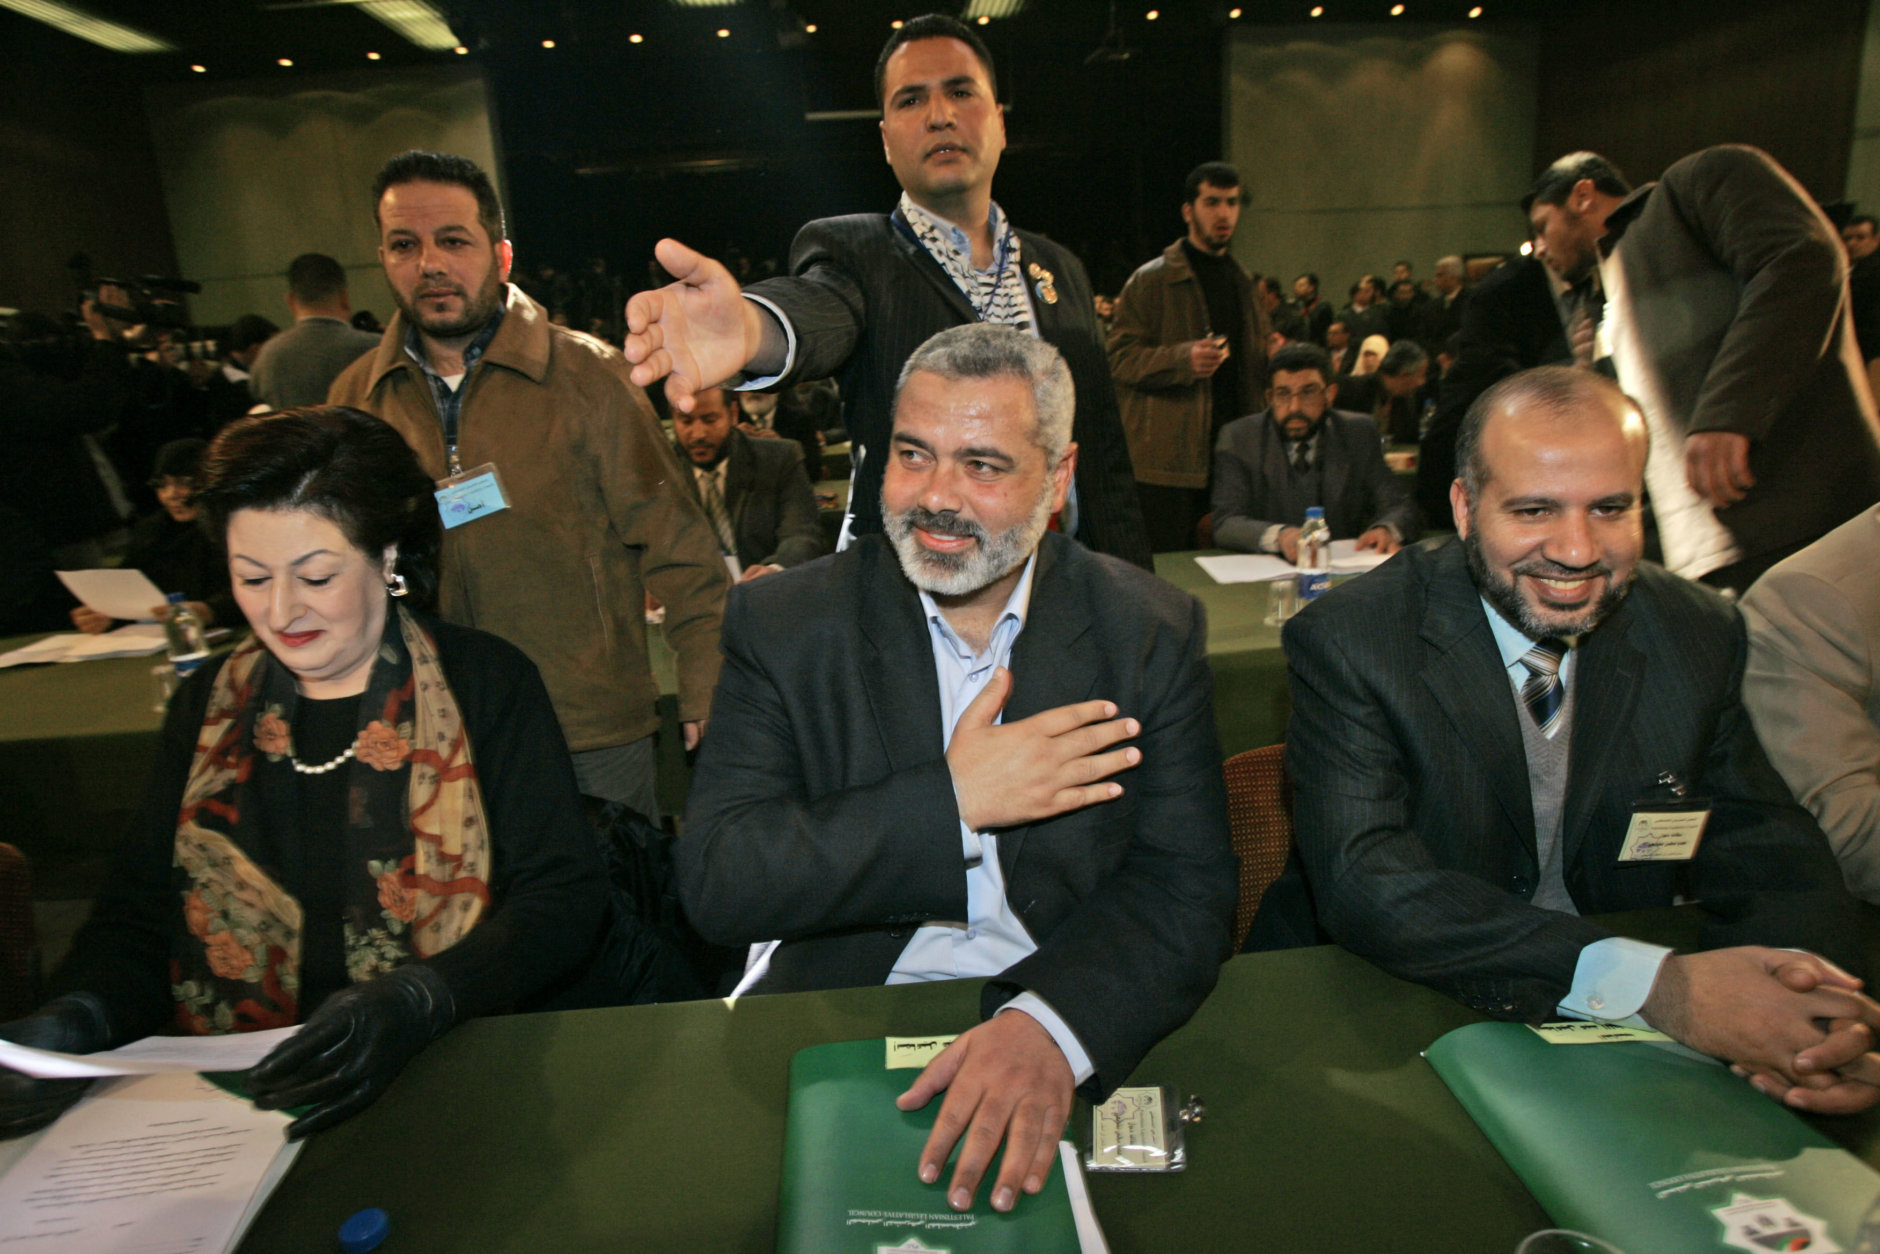 Ismail Haniyeh, Hamas' apparent choice for prime minister, center, replys to a greeting of lawmakers inside the Palestinian parliament in Gaza City, Saturday, Feb. 18, 2006. A Hamas-dominated Palestinian parliament was sworn in Saturday, and Palestinian leader Mahmoud Abbas was expected to ask the Islamic militant group in his opening address to accept his moderate policies, including negotiations with Israel. (AP Photo/Alexander Zemlianichenko)